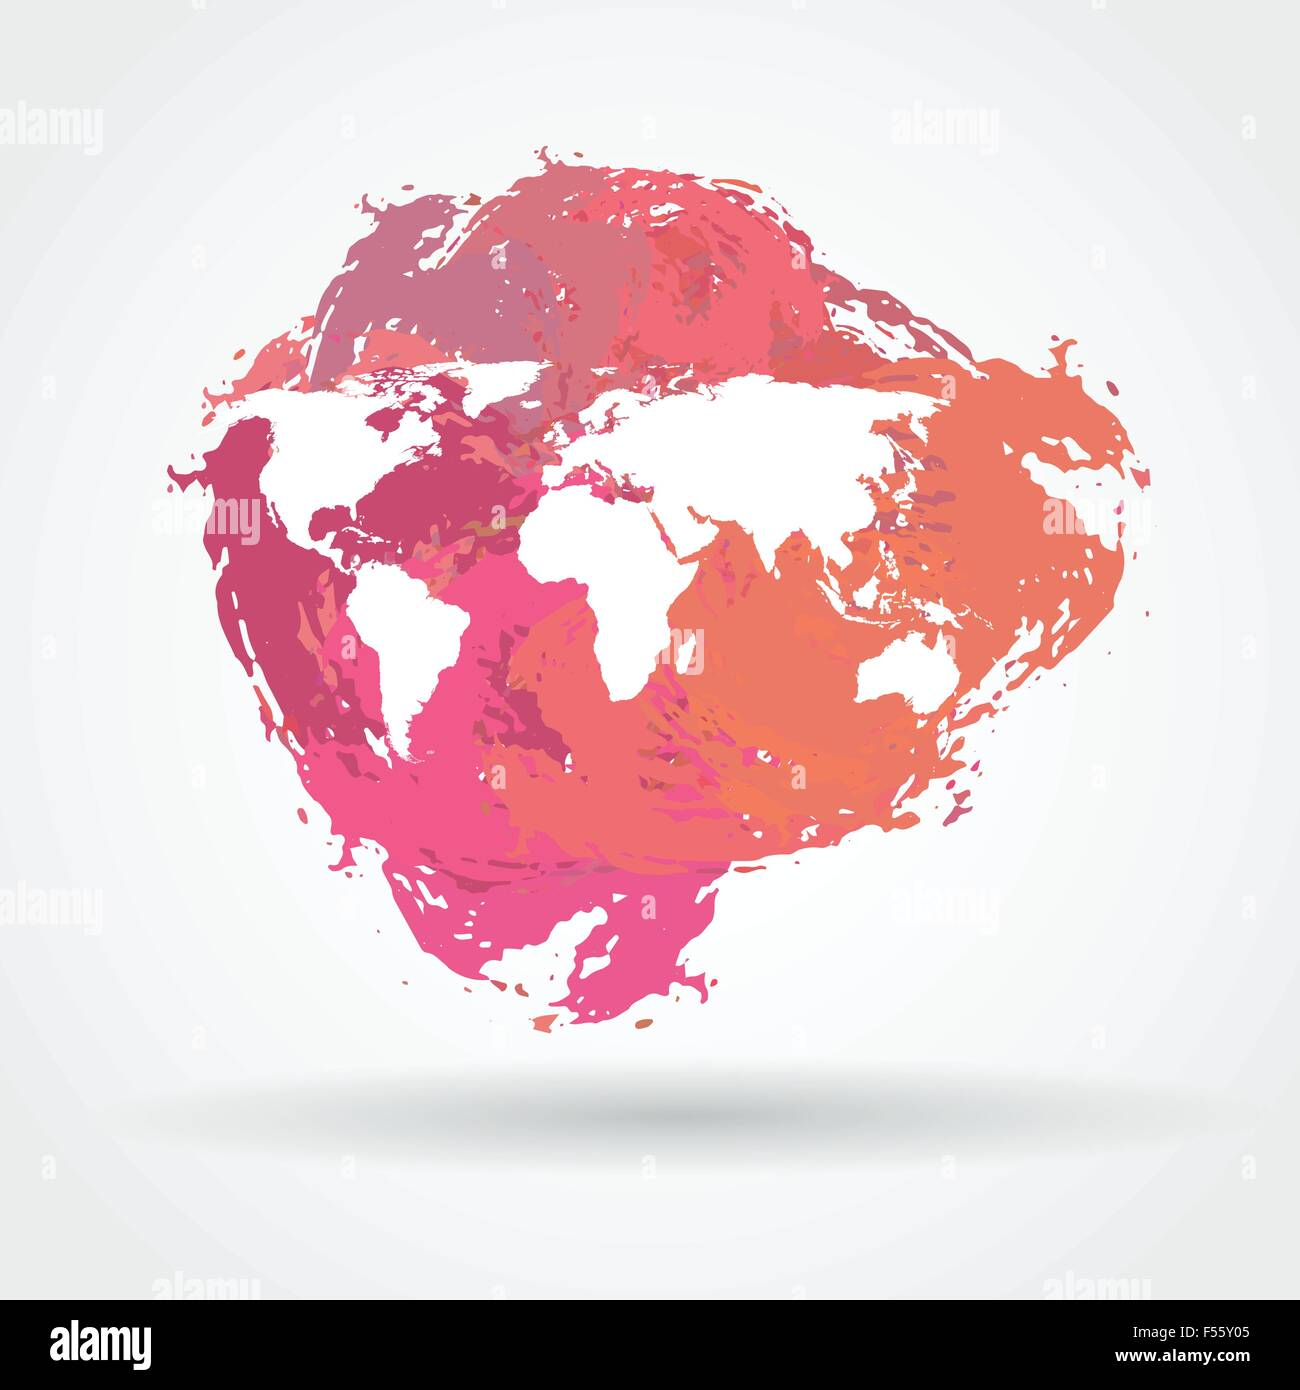 World map on a stain - Stock Vector